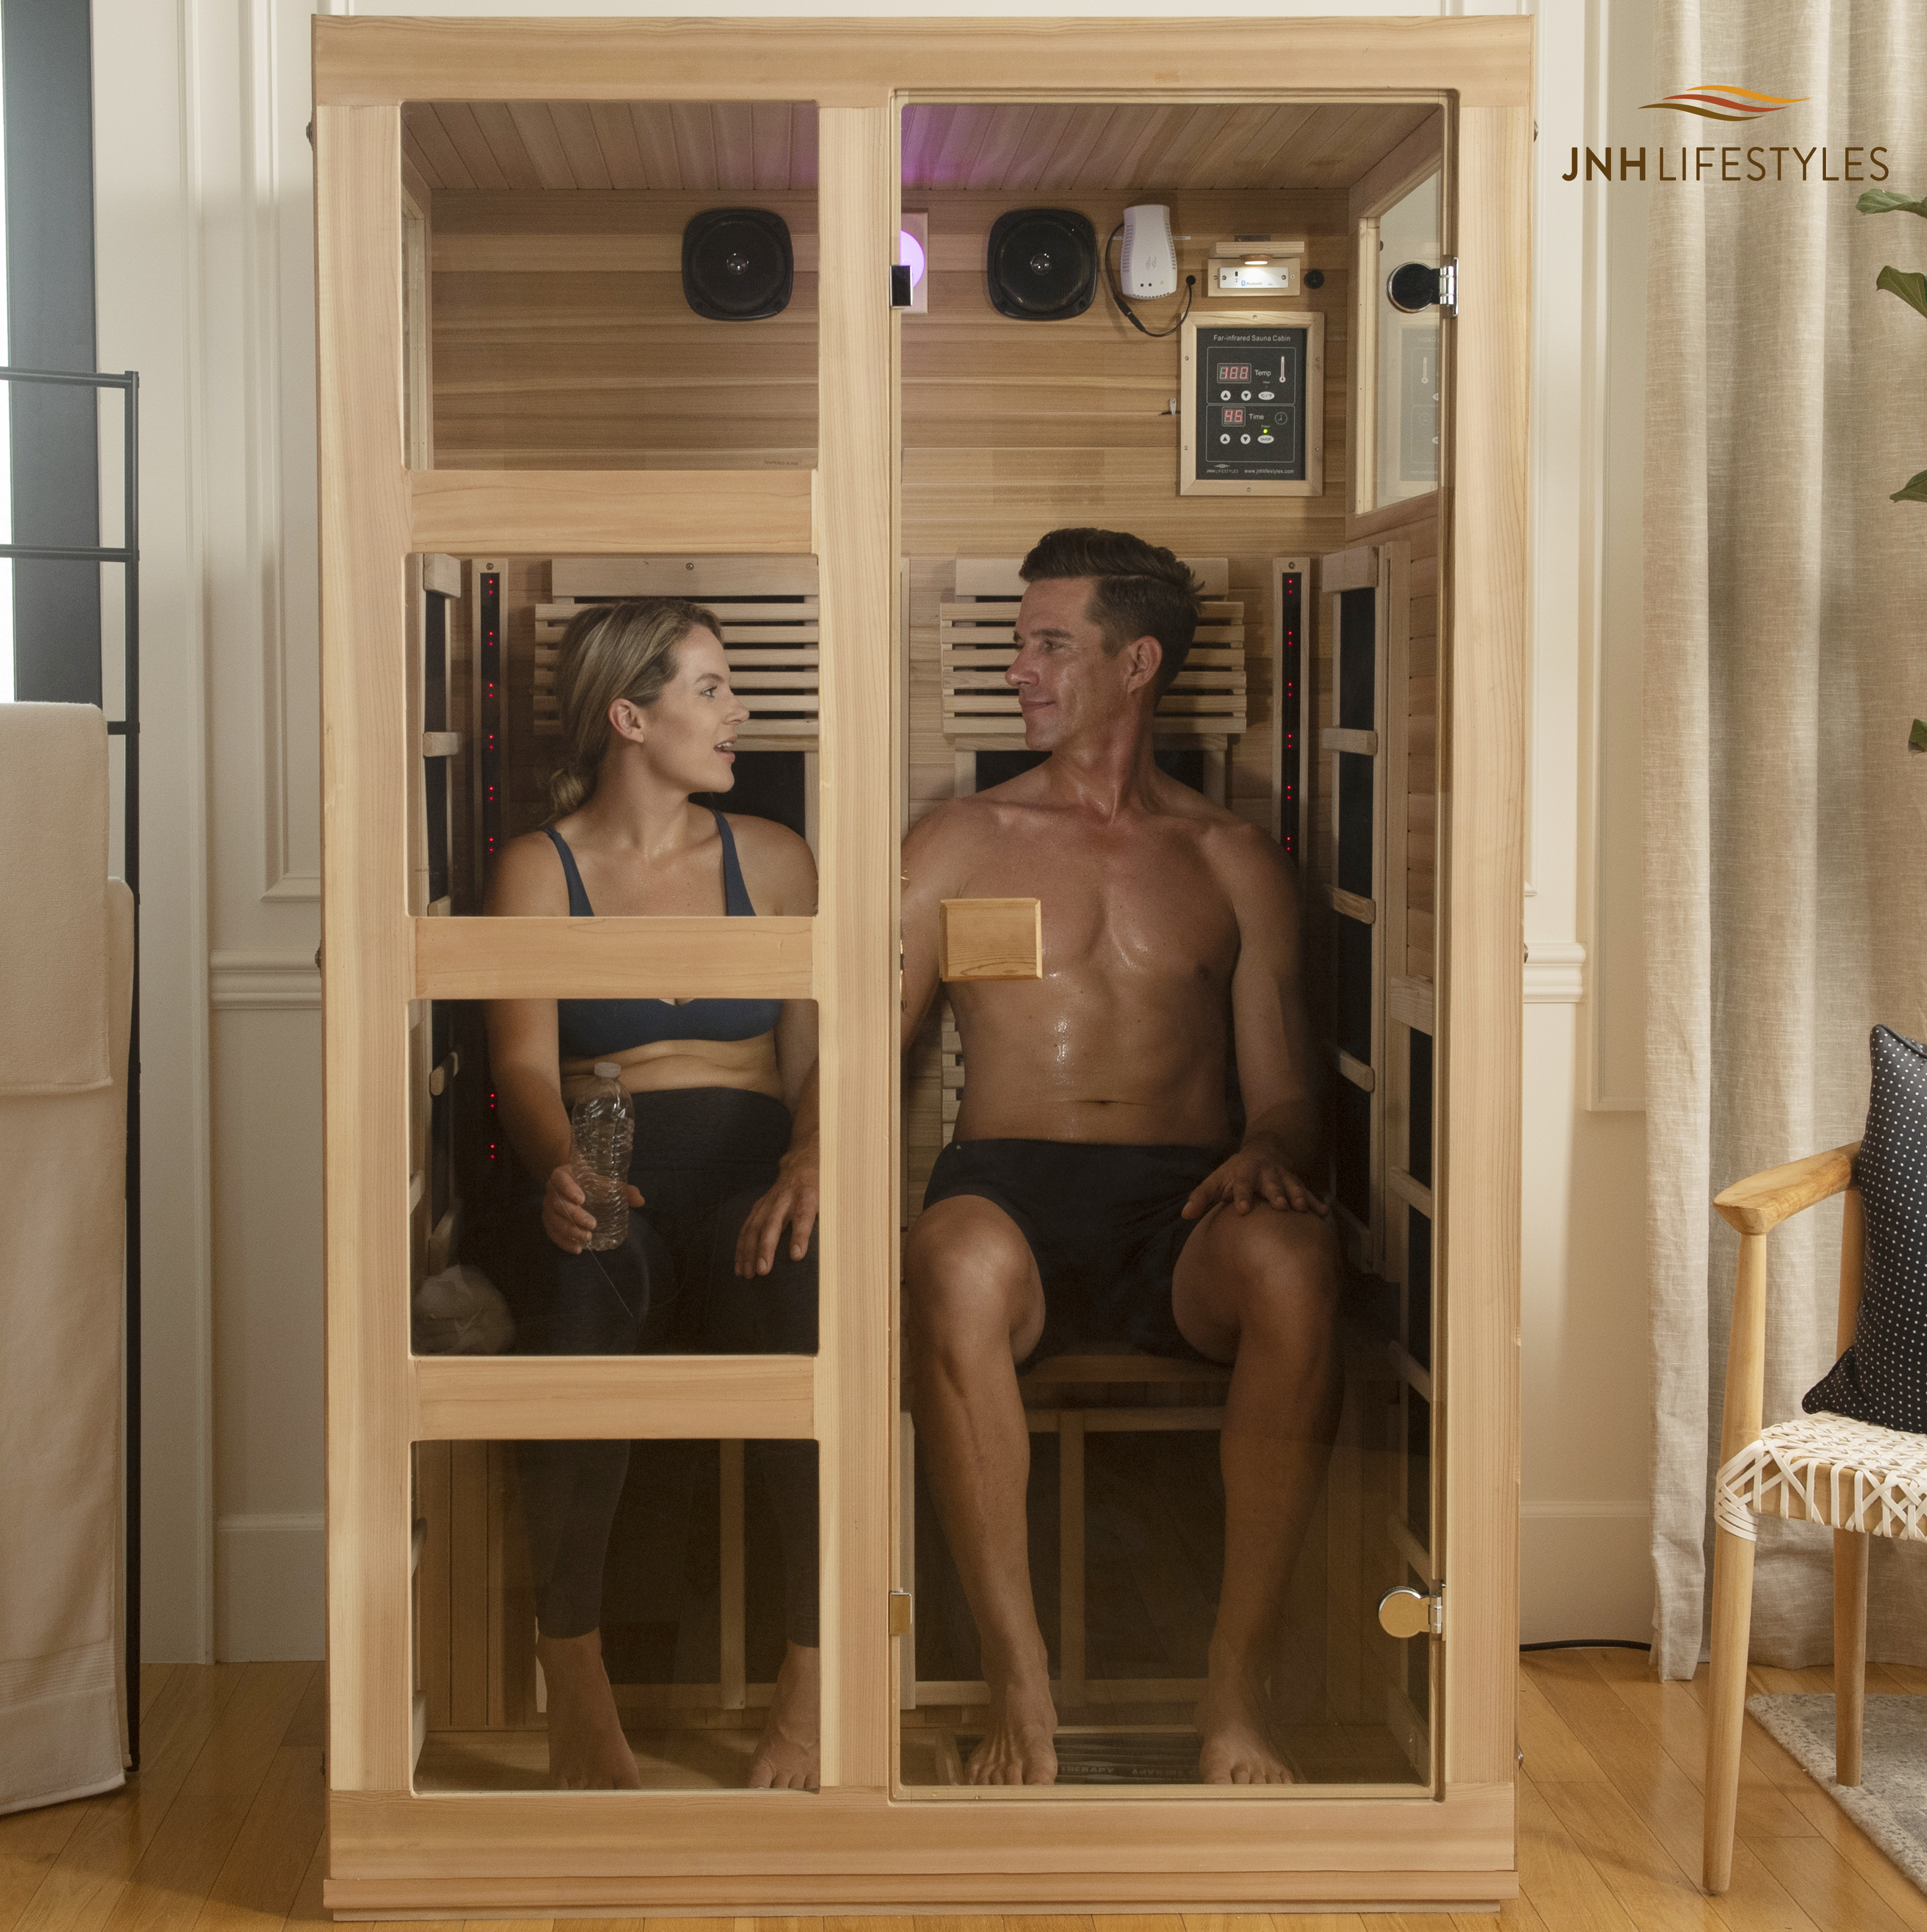 Let A Home Infrared Sauna Help Your Chronic Pain - JNH Lifestyles